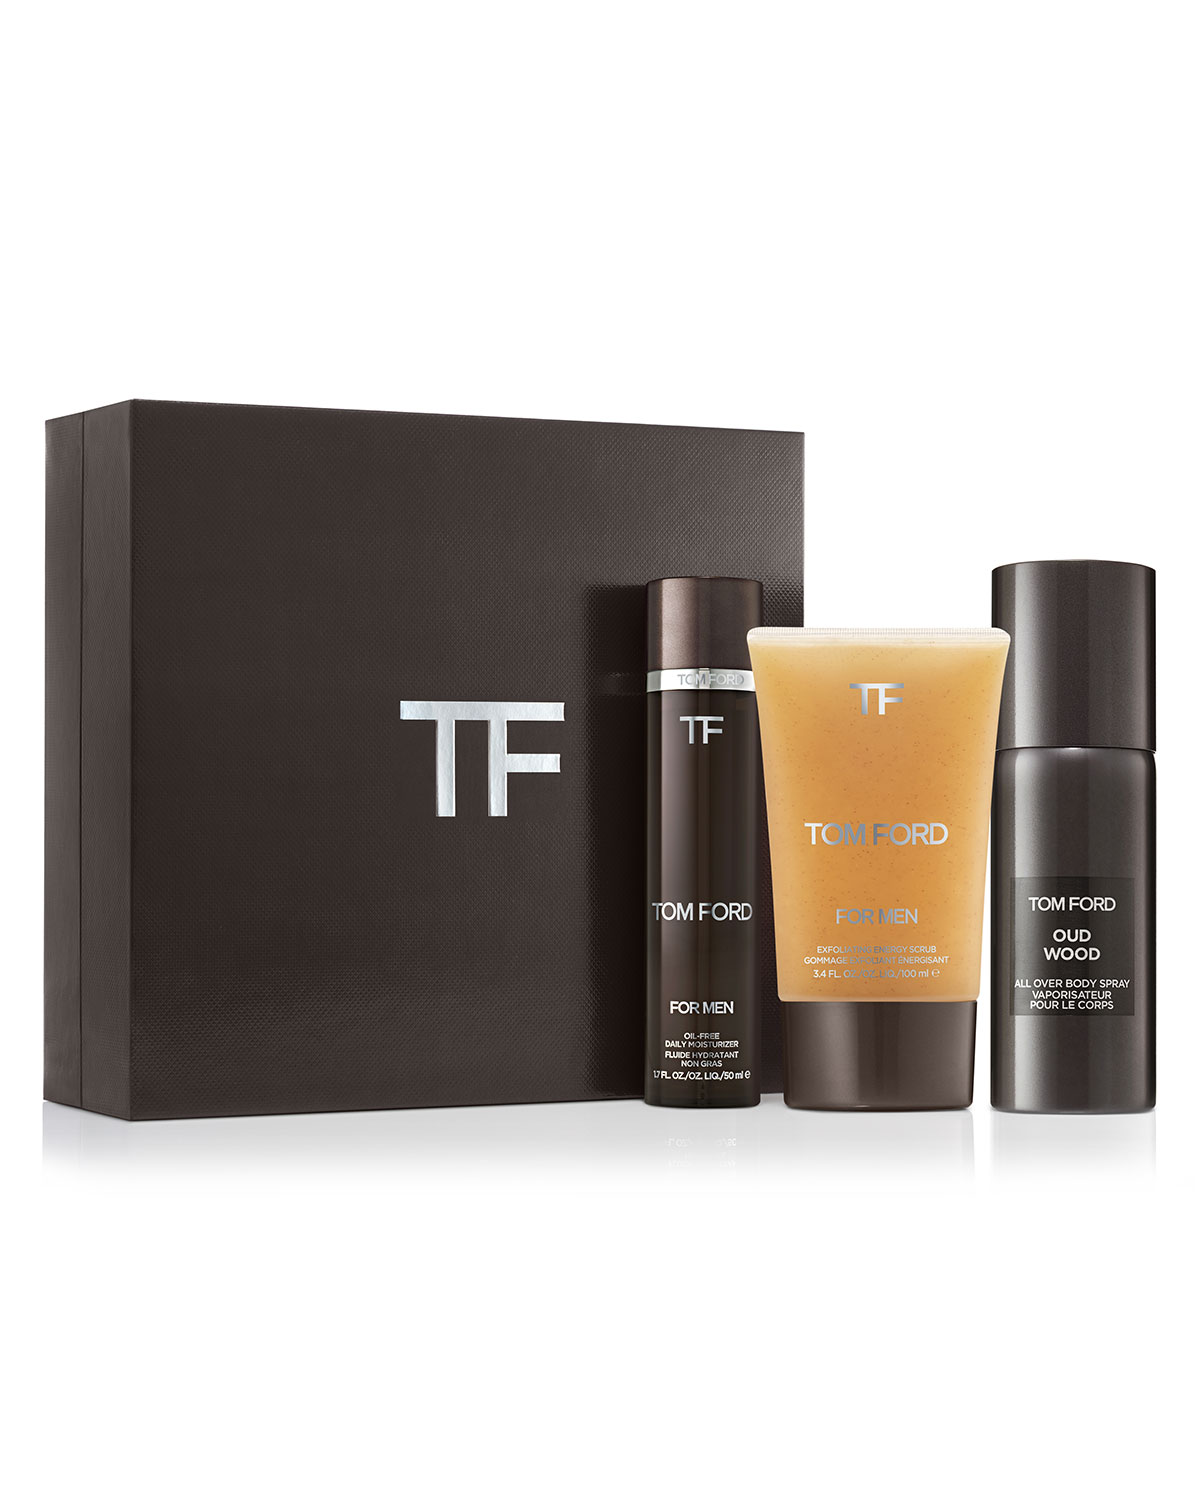 TOM FORD For Men Skincare and Grooming Set